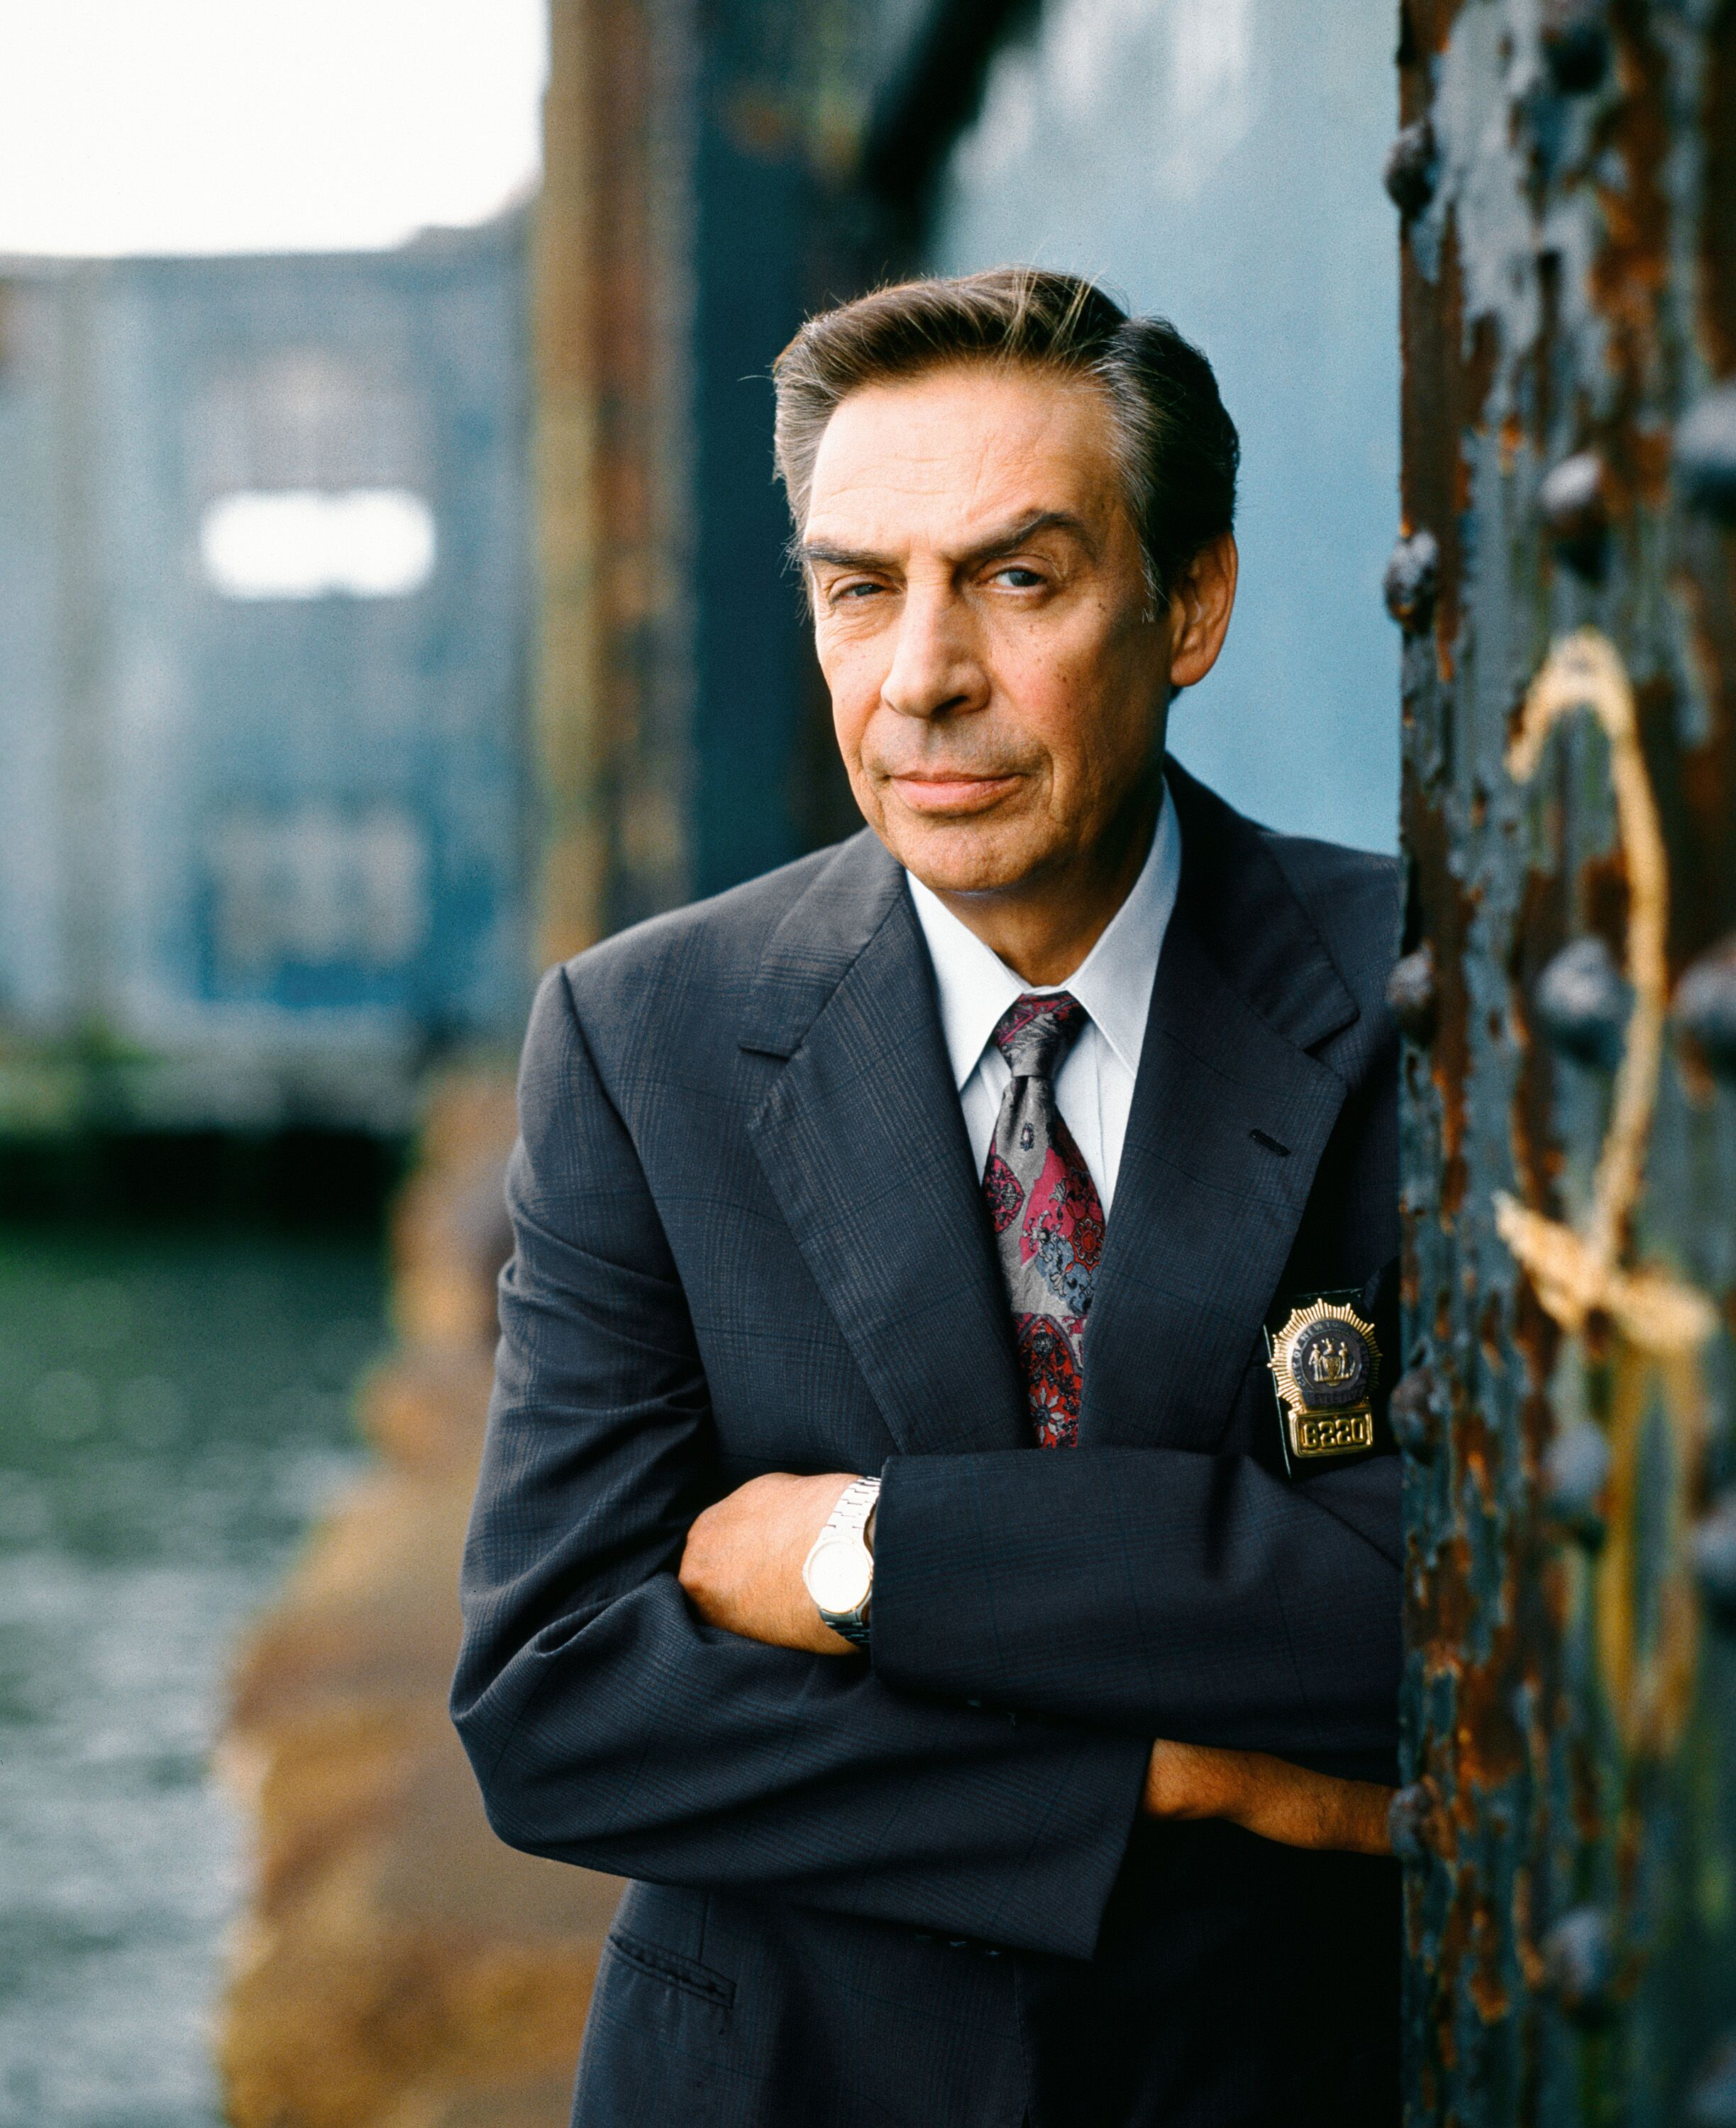 LAW & ORDER -- Season 7 -- Pictured: Jerry Orbach as Detective Lennie Briscoe | Photo: Getty Images